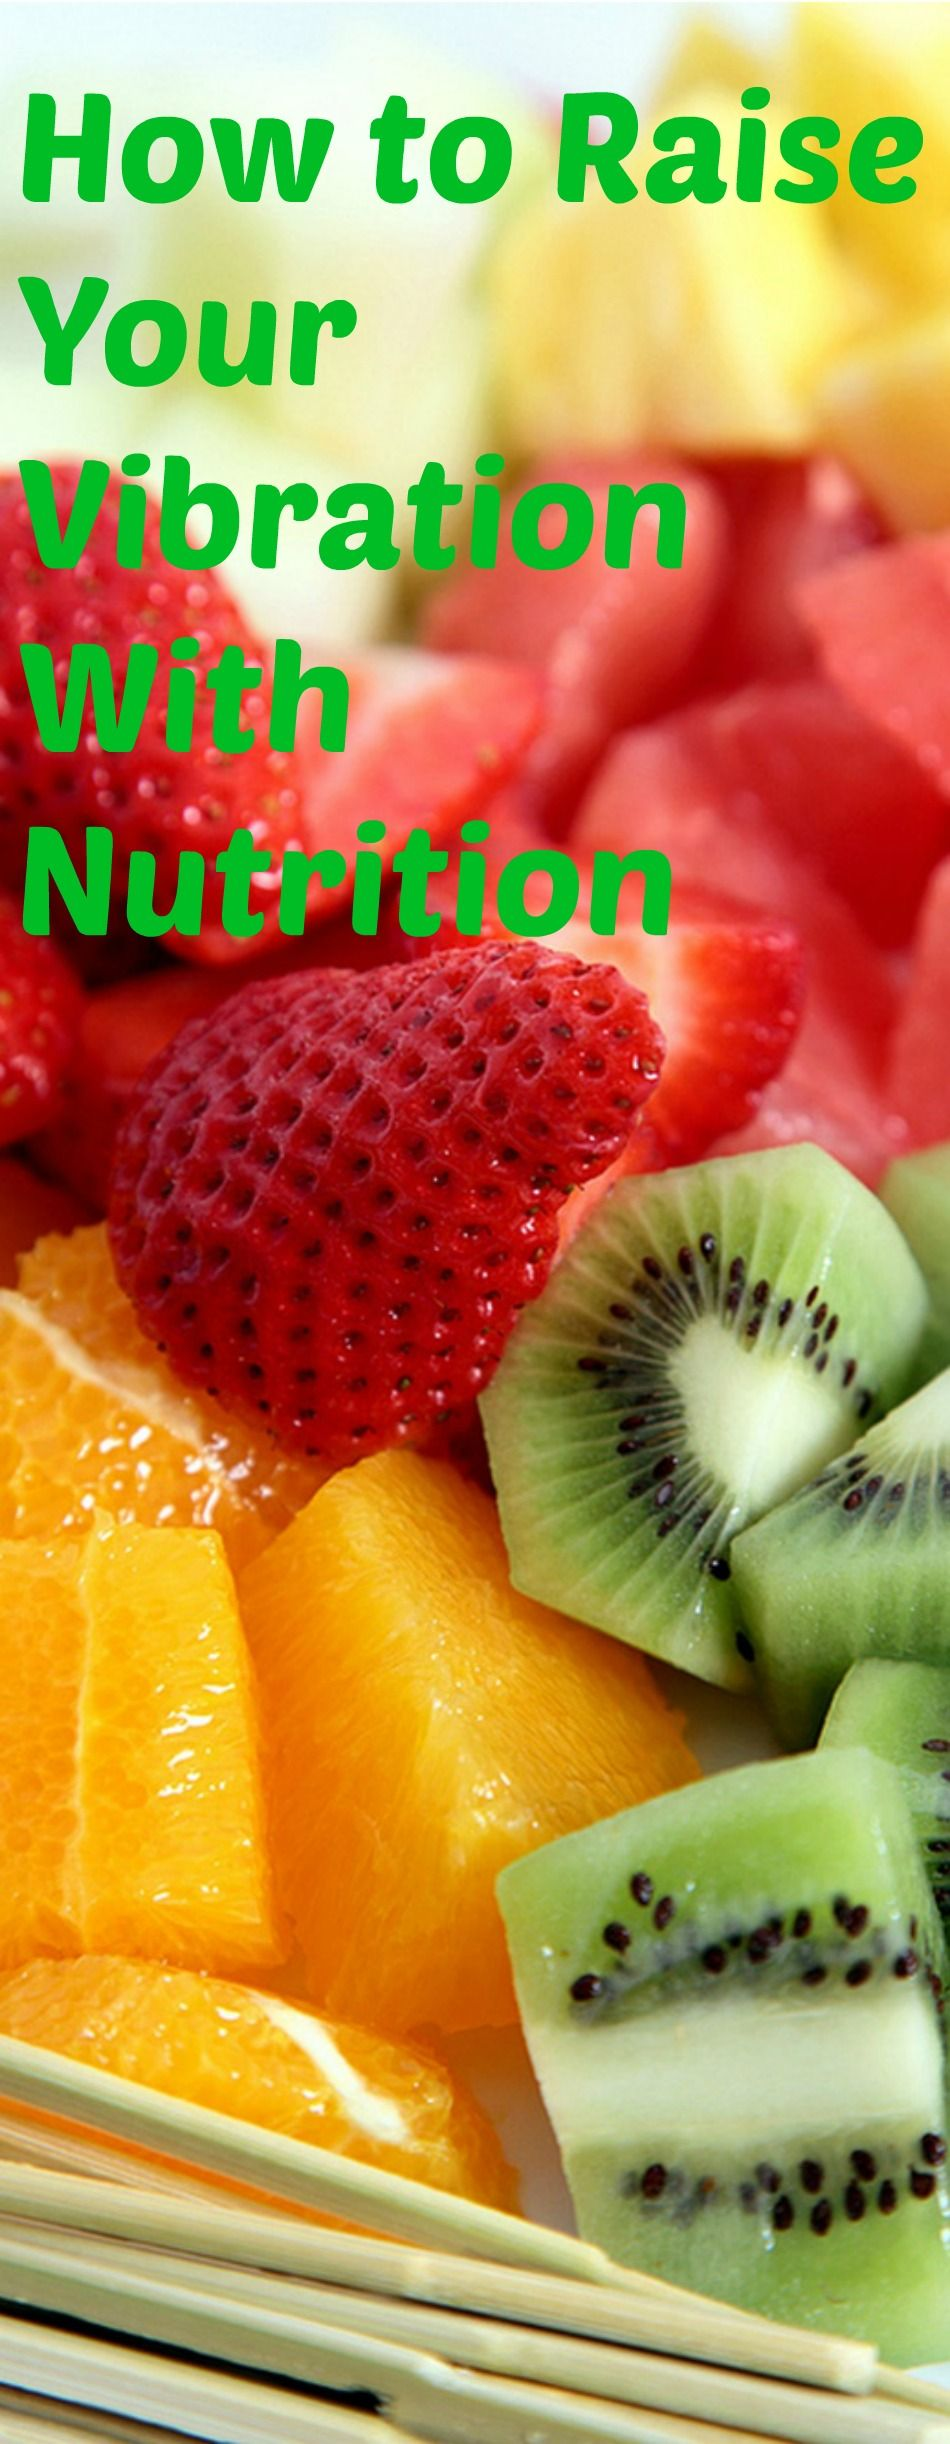 How to Raise Your Vibration With Nutrition - High Vibration